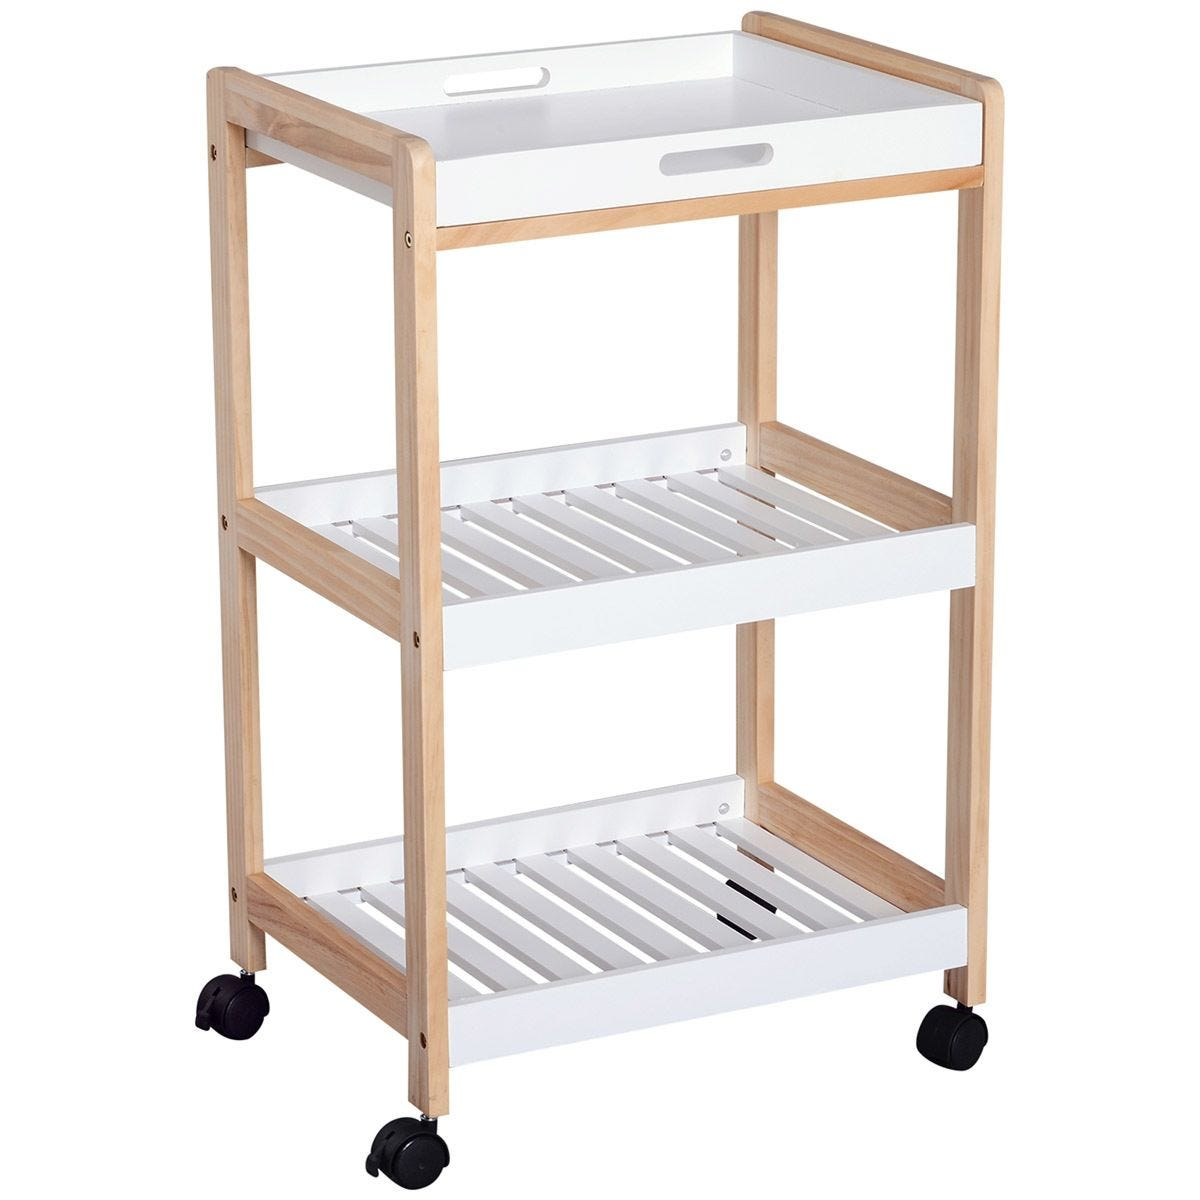 3-Tier Mobile Bamboo Kitchen Trolley Cart With Rolling Wheels - White